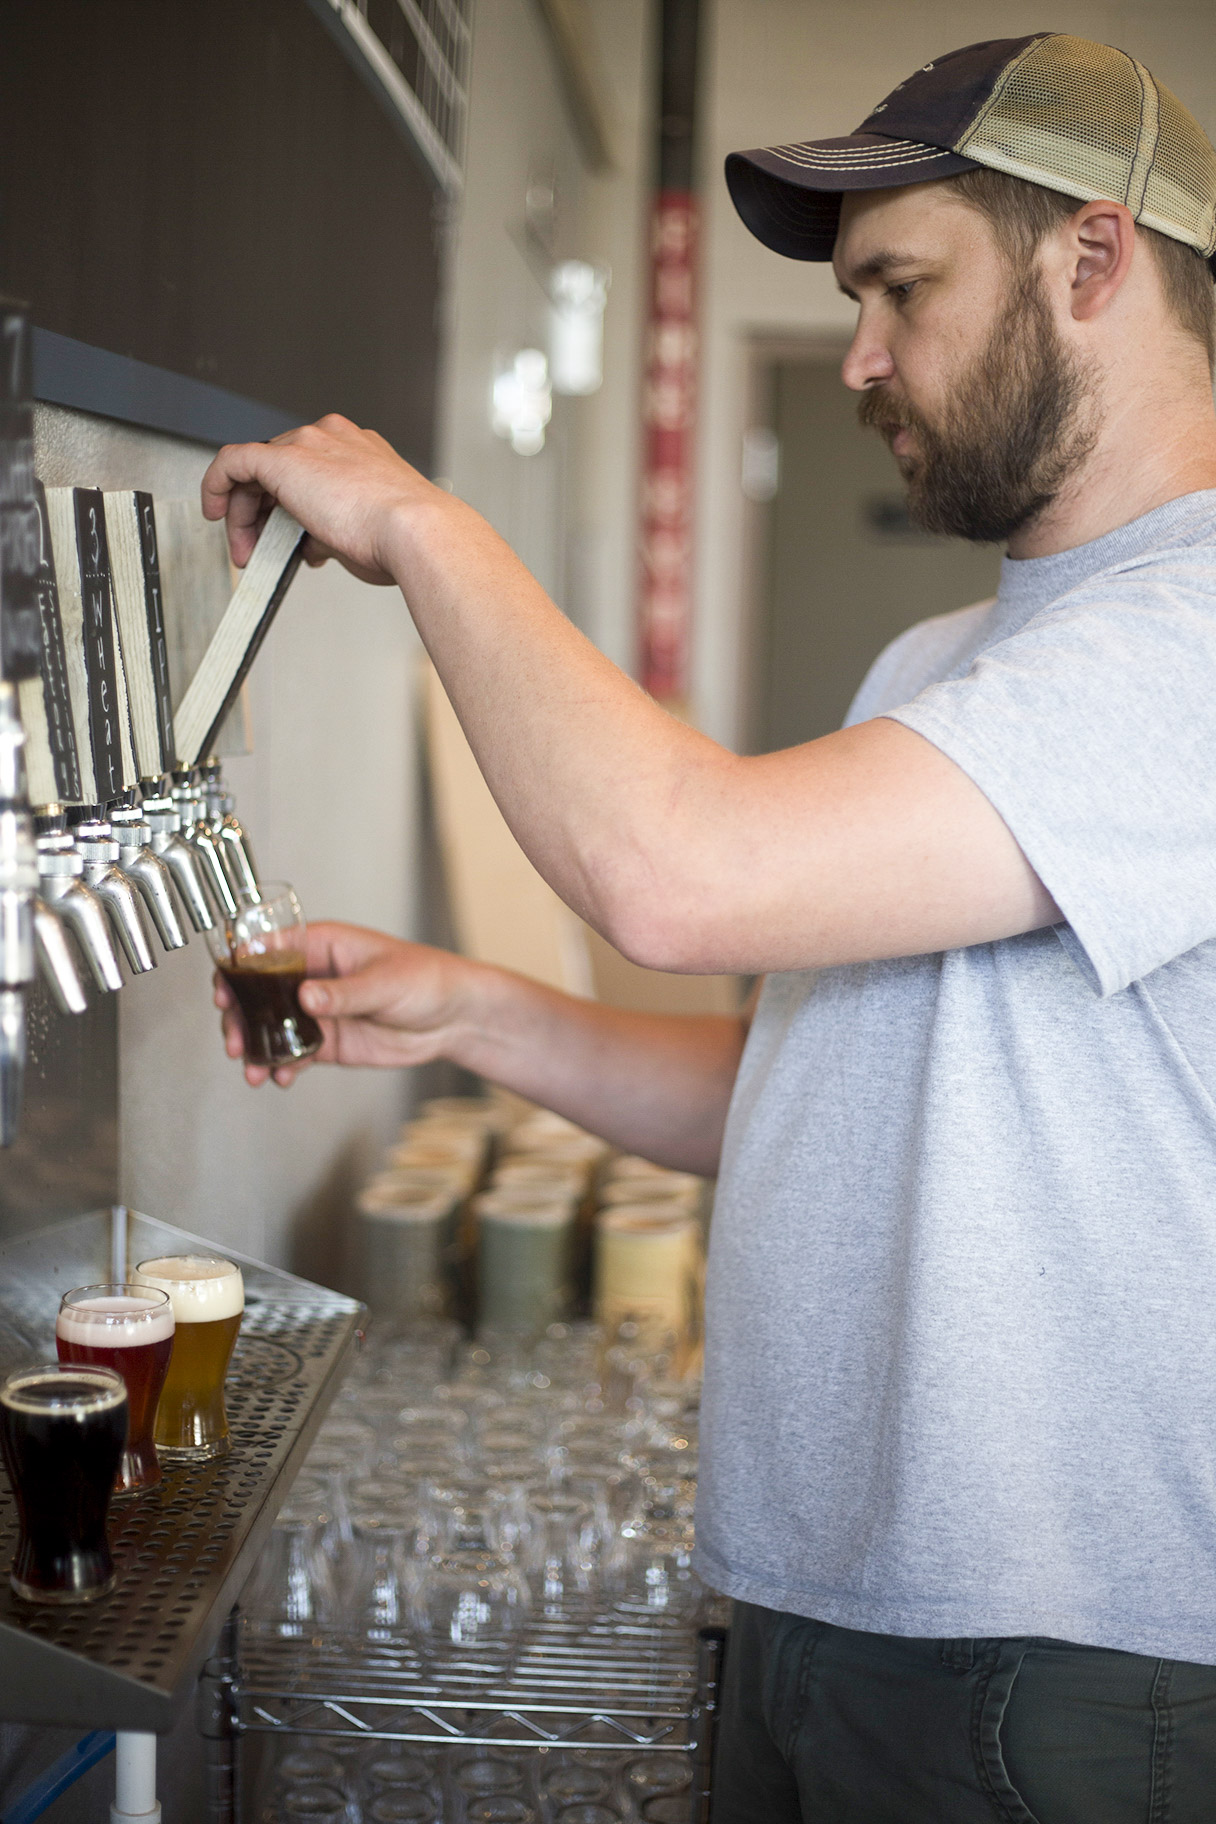 Derek Meyers pours samples of Imminent Brewings beer // Photo by Louis Garcia